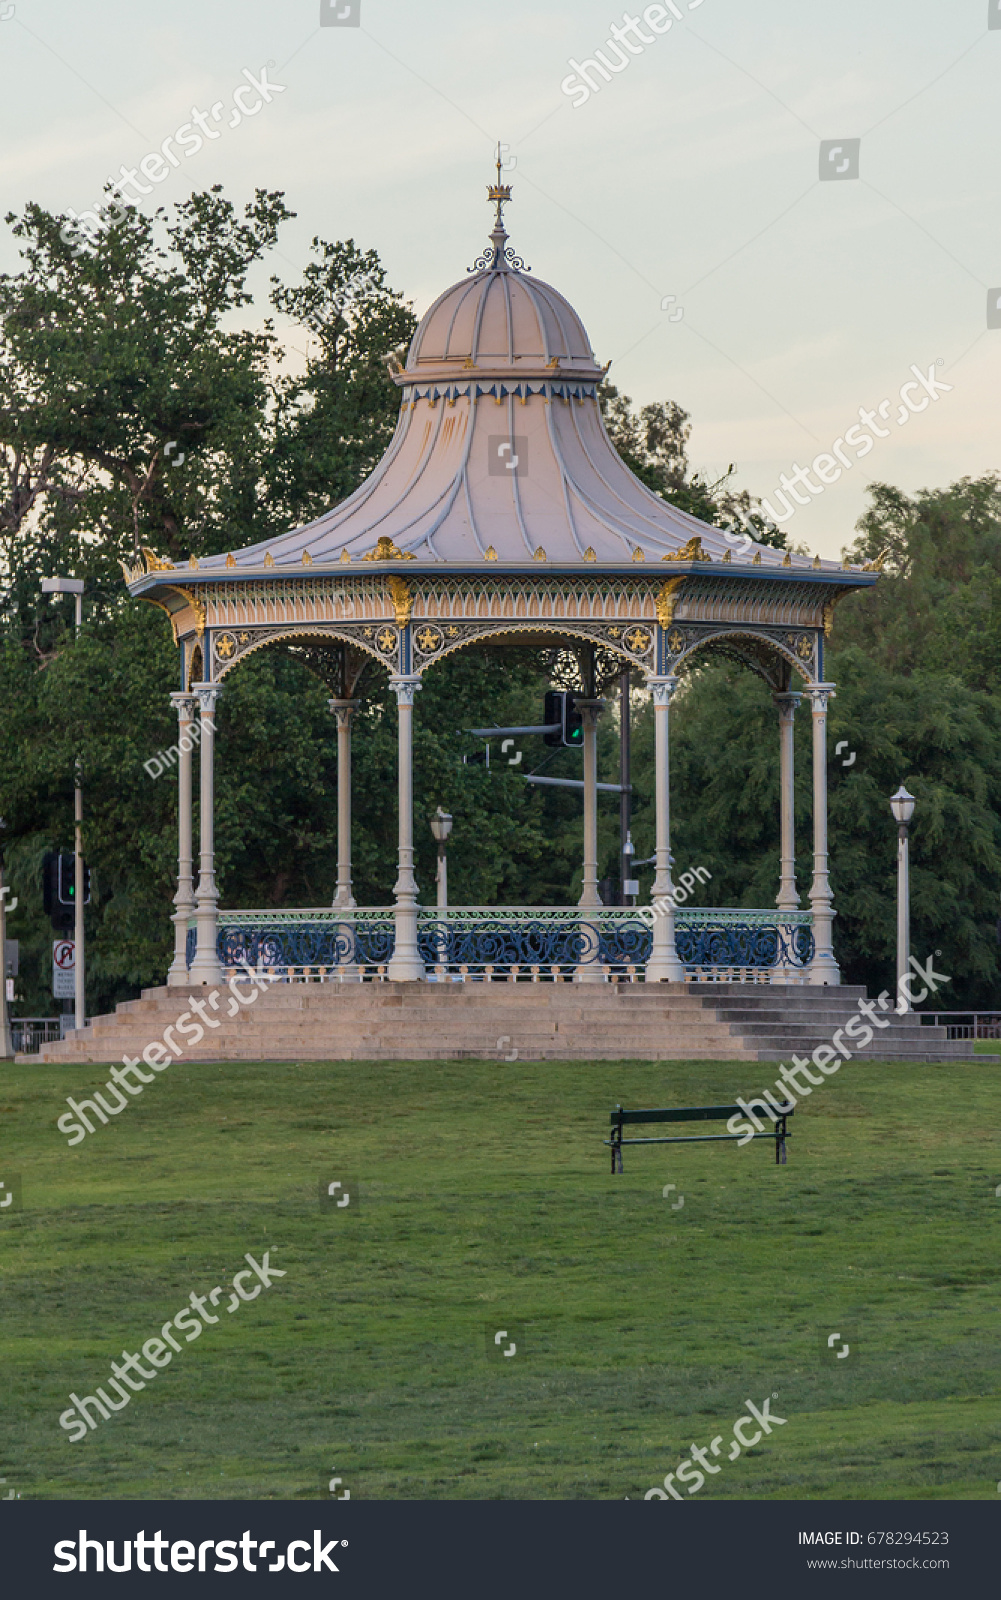 Gazebo Adelaide Adelaide November 2016 Harmonic Case Over Stock Photo Edit Now